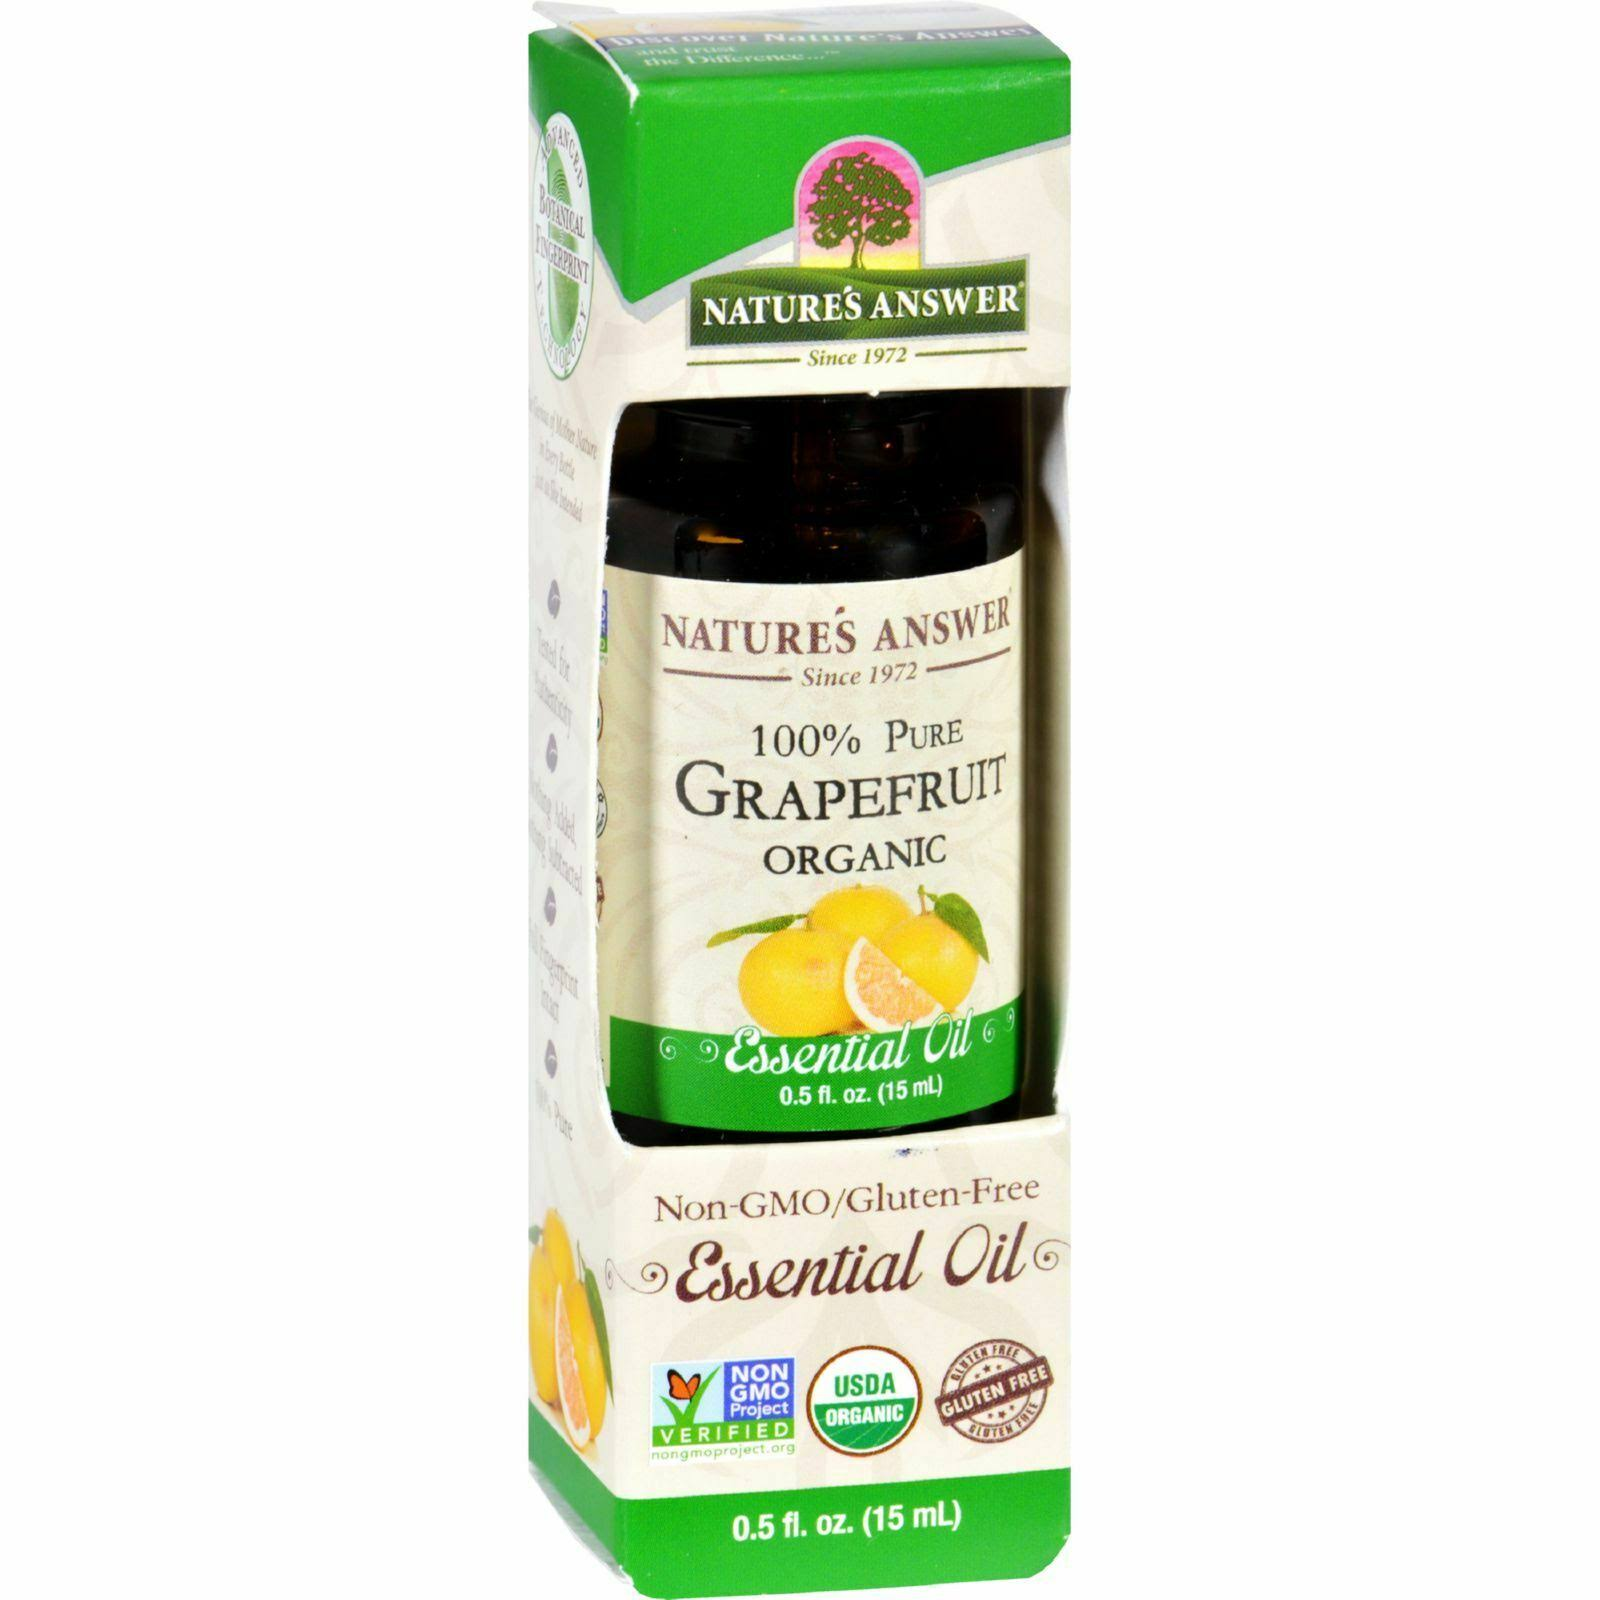 Nature's Answer Organic Essential Oil - Grapefruit, 15ml